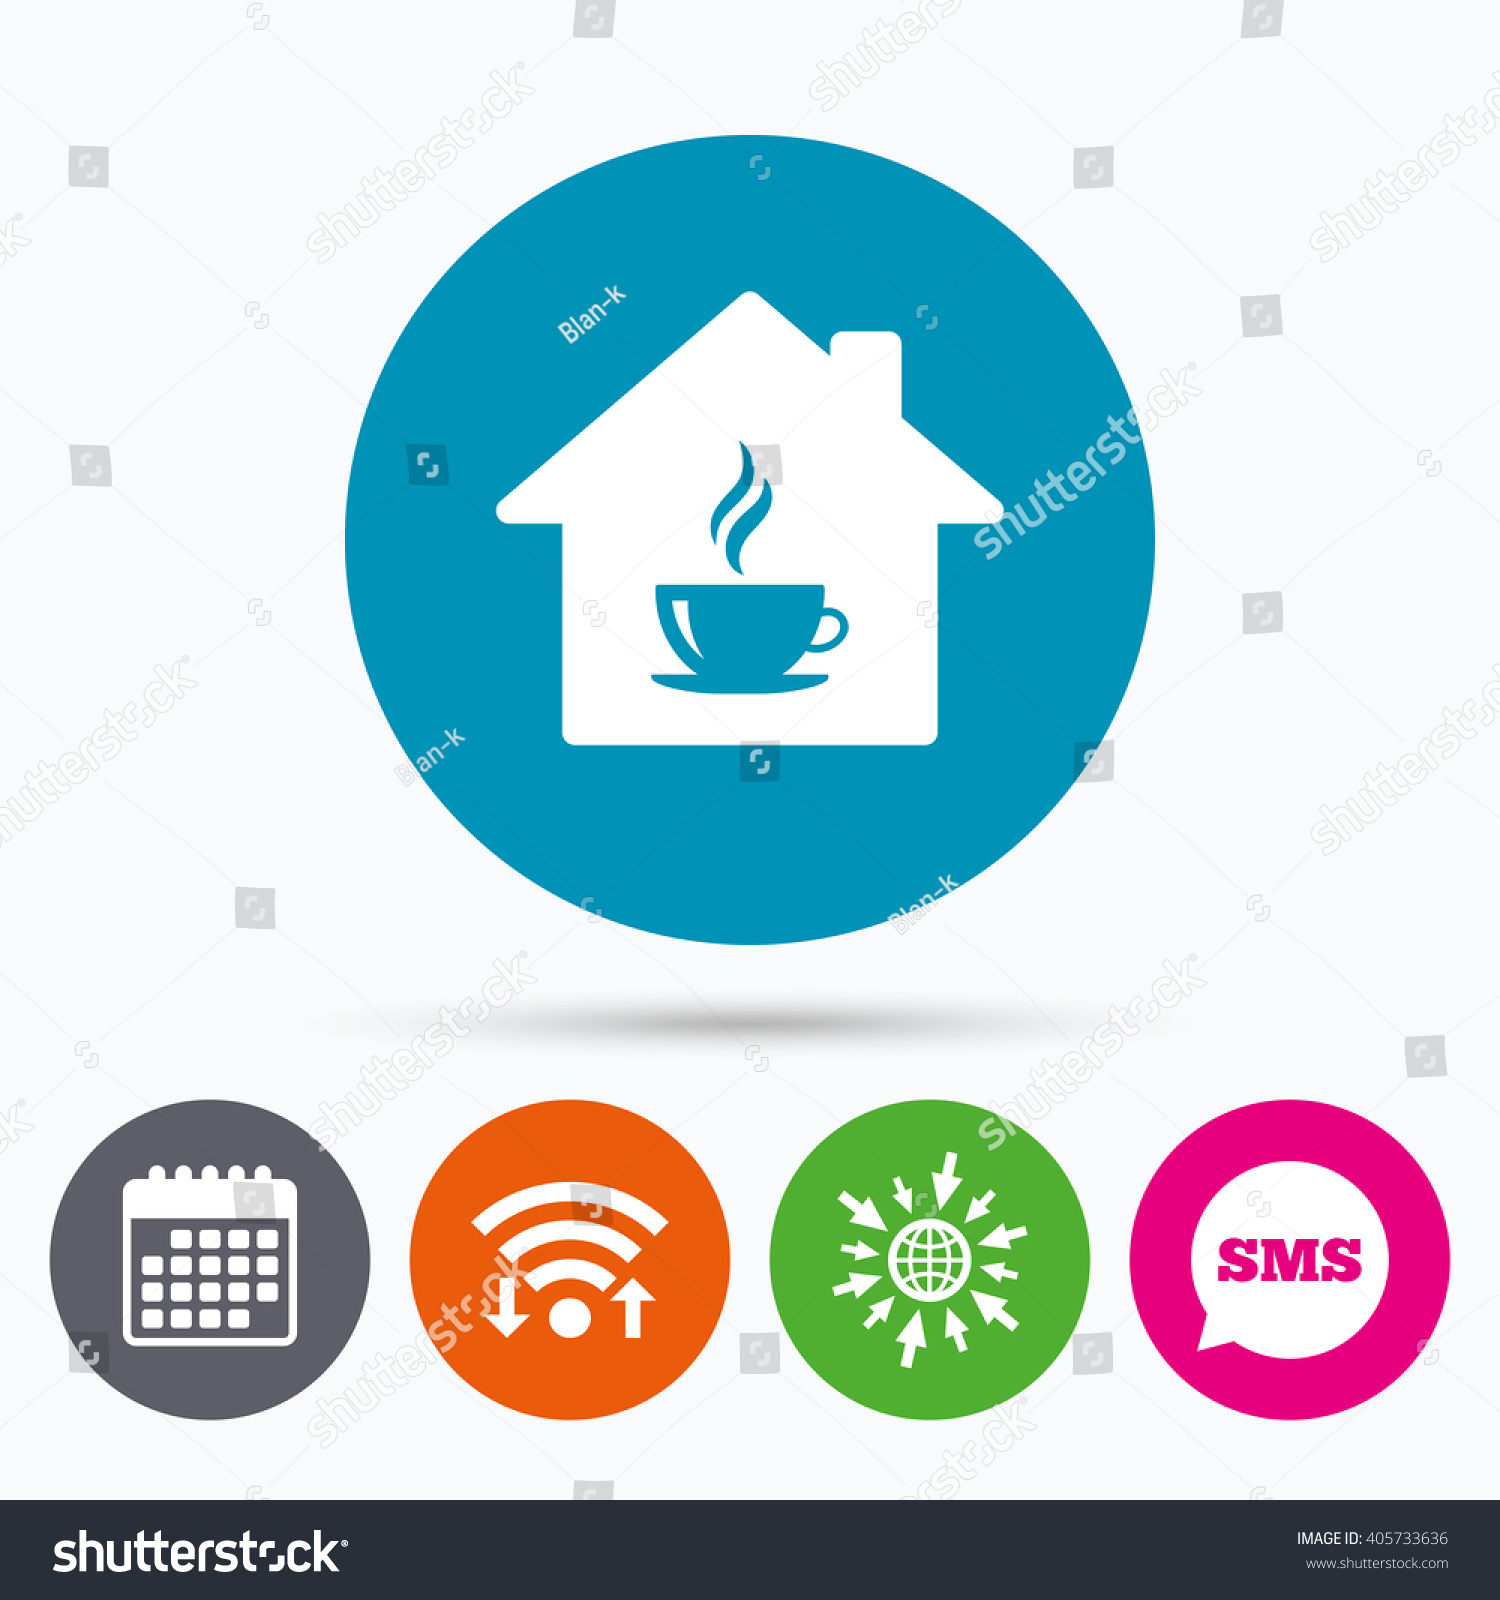 Wifi, Sms and calendar icons. Coffee shop icon. Hot coffee cup sign.